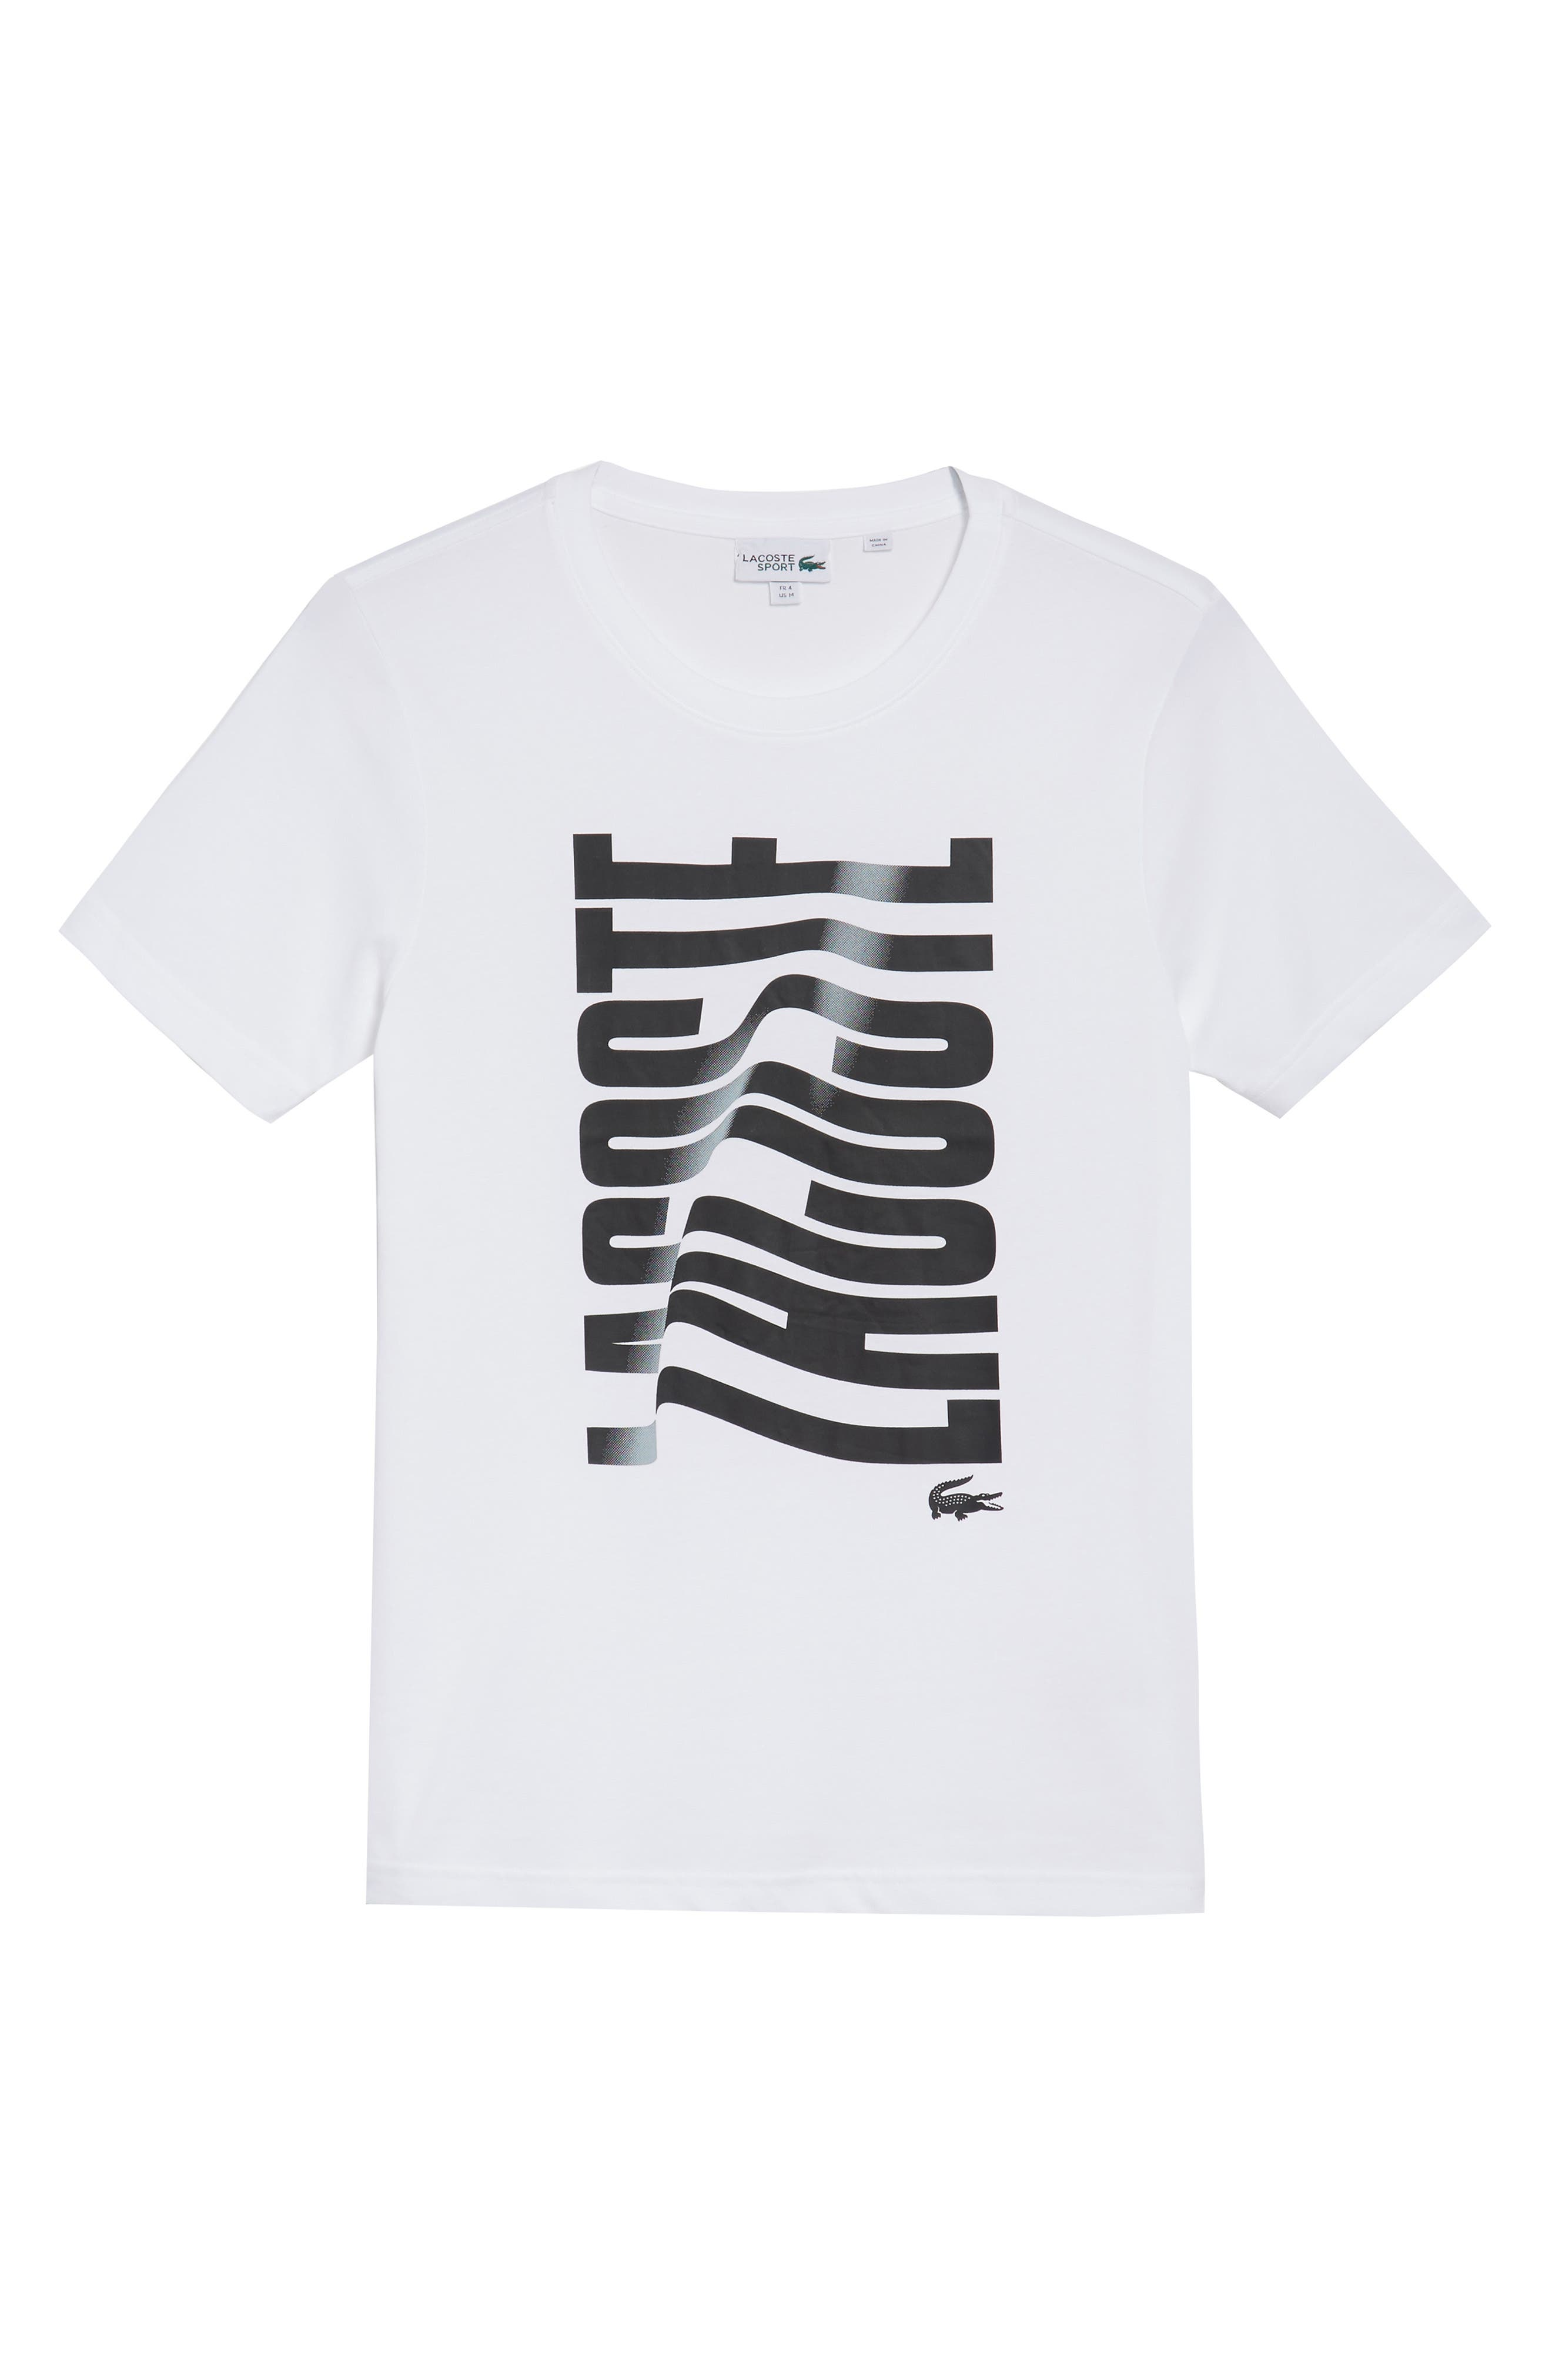 LACOSTE Vertical Graphic T-Shirt